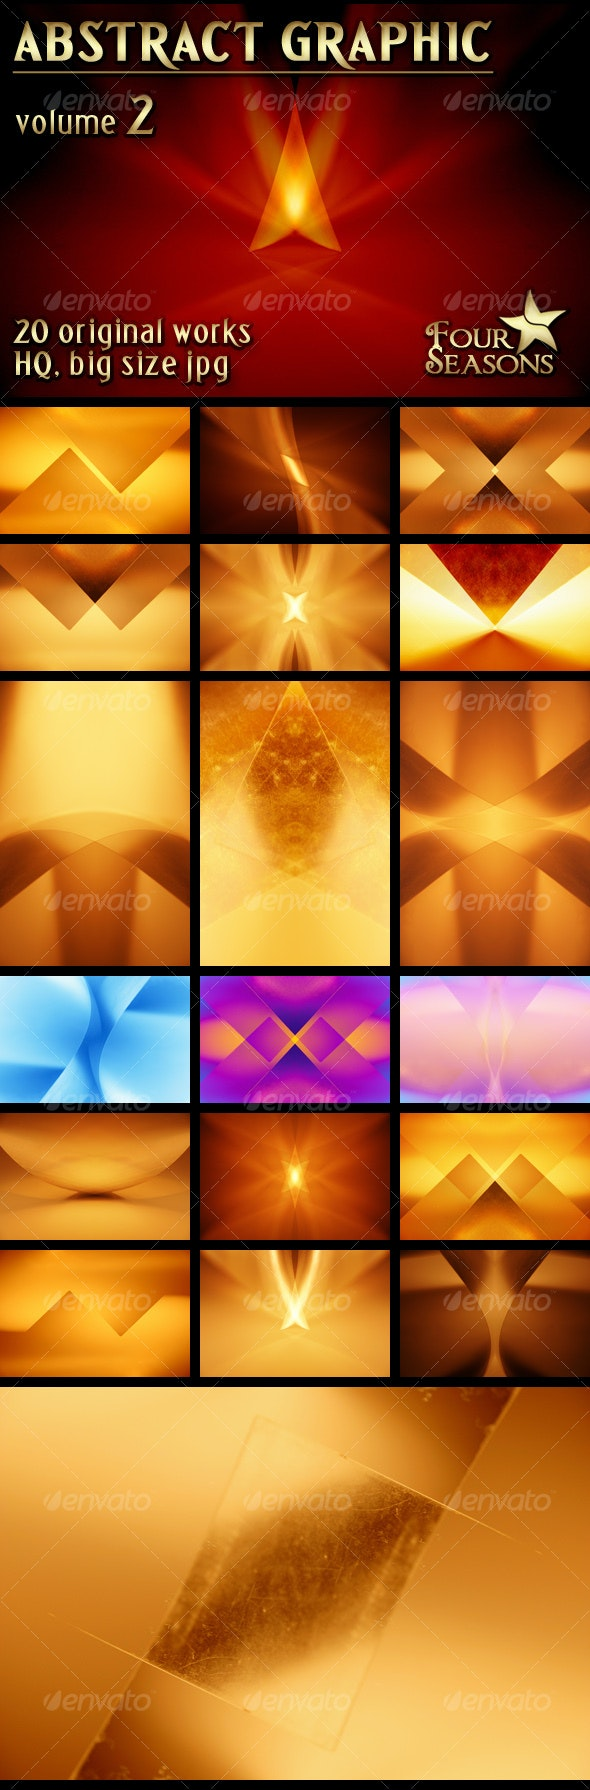 Abstract Graphic backgrounds, volume 2 - Abstract Backgrounds